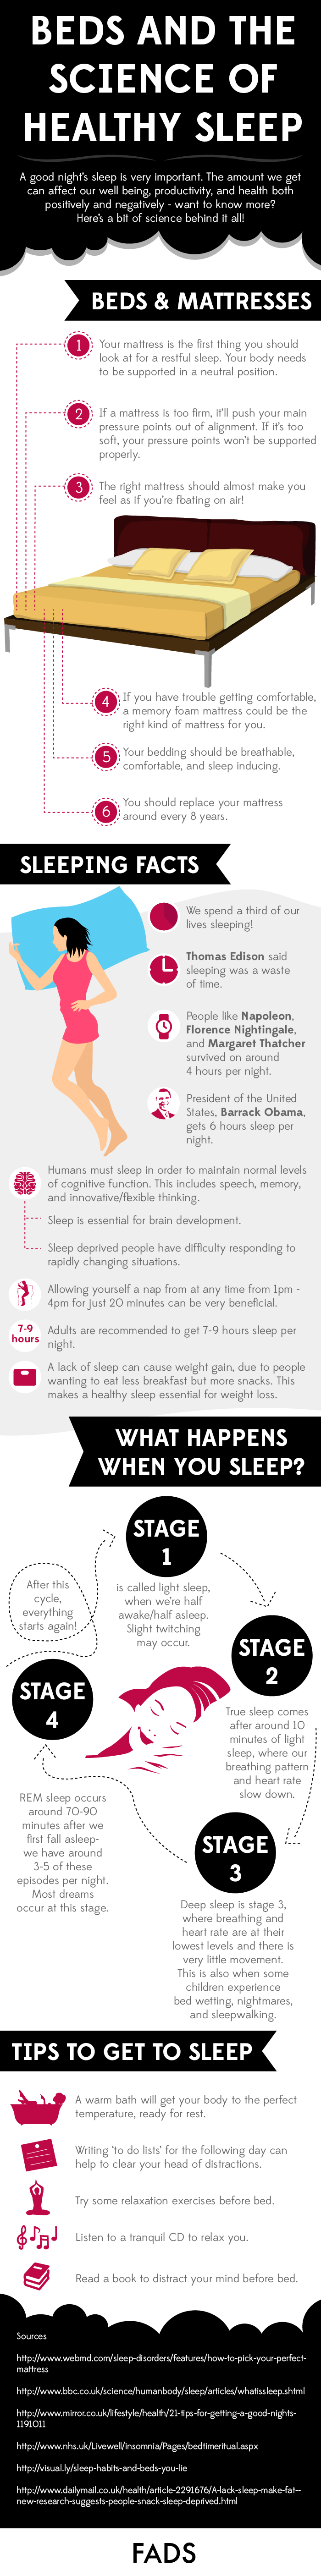 Beds and the Science of Healthy Sleep by Fads